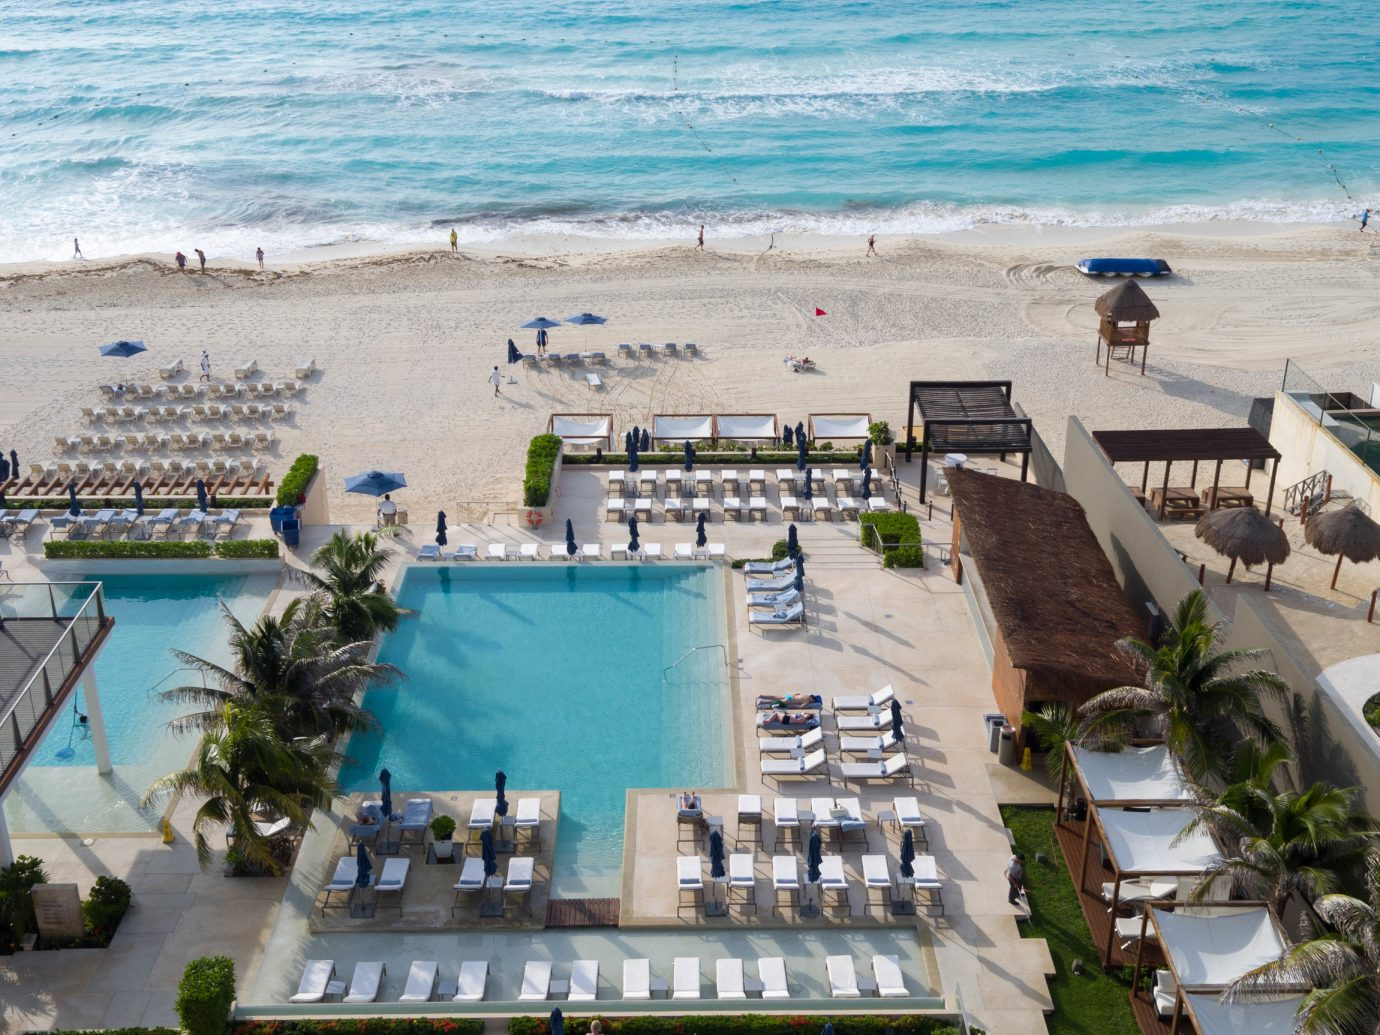 Aerial view of the pool at Secrets The Vine